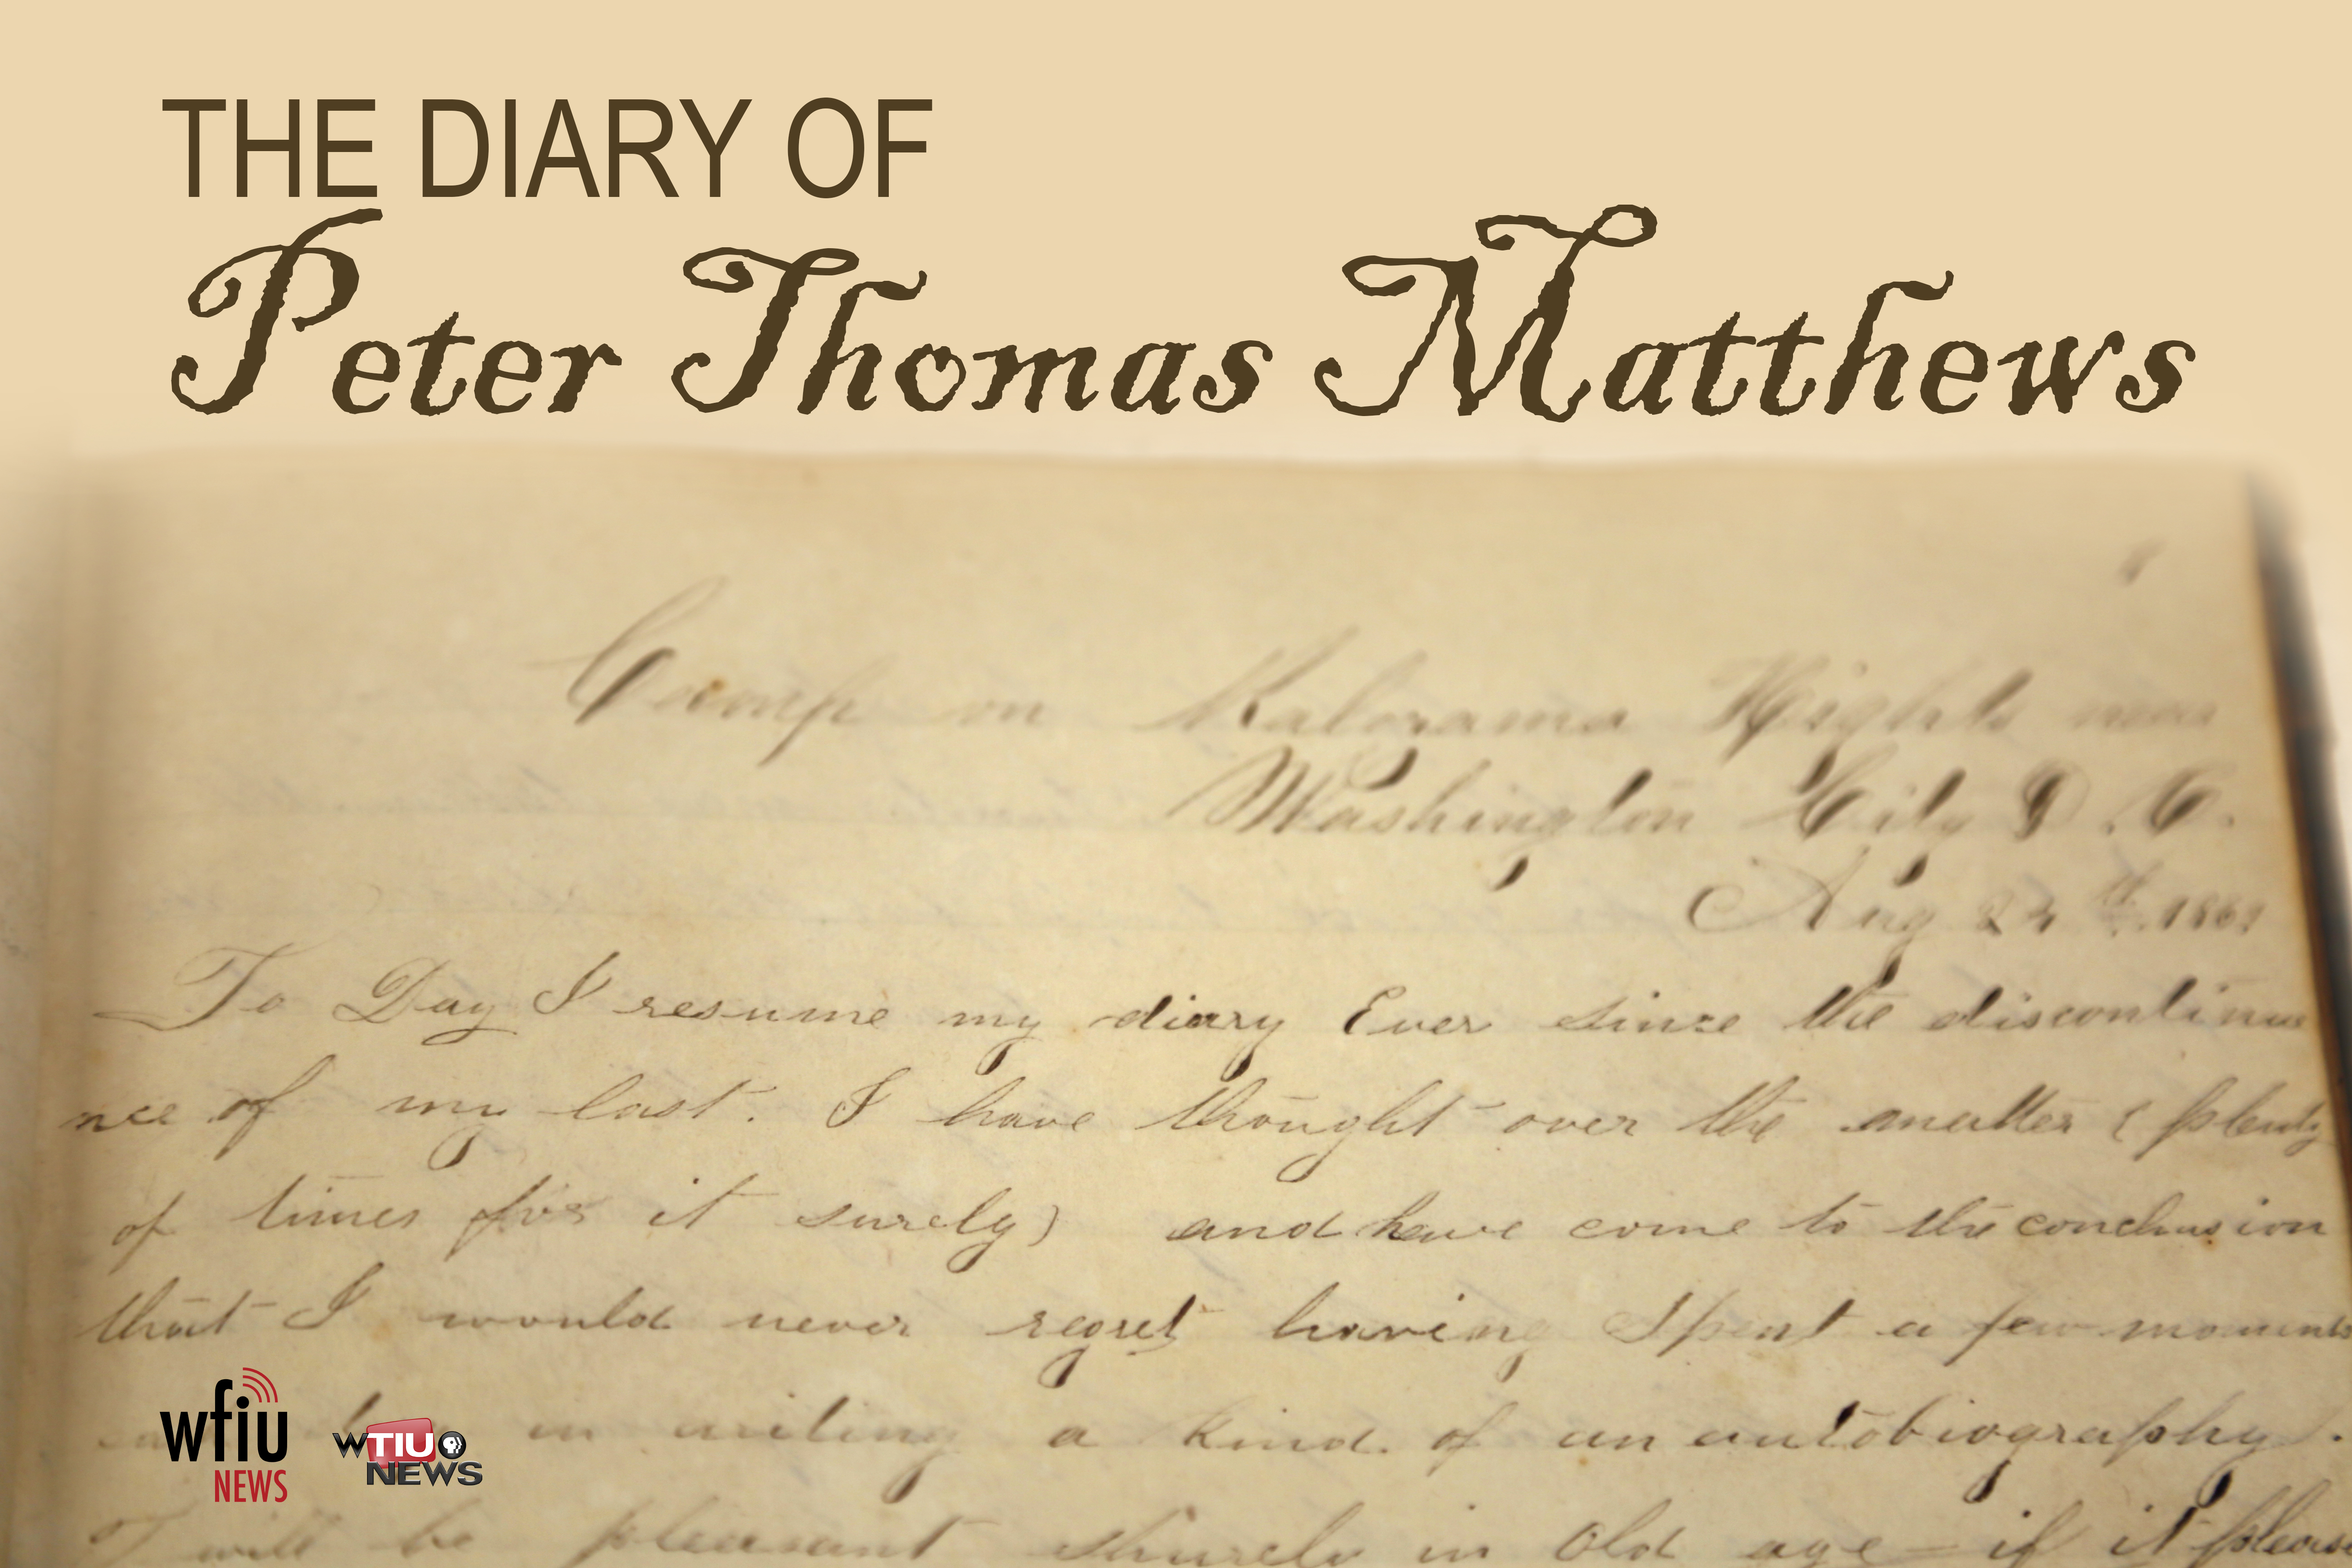 diary-of-peter-thomas-matthews-generic-template.jpg